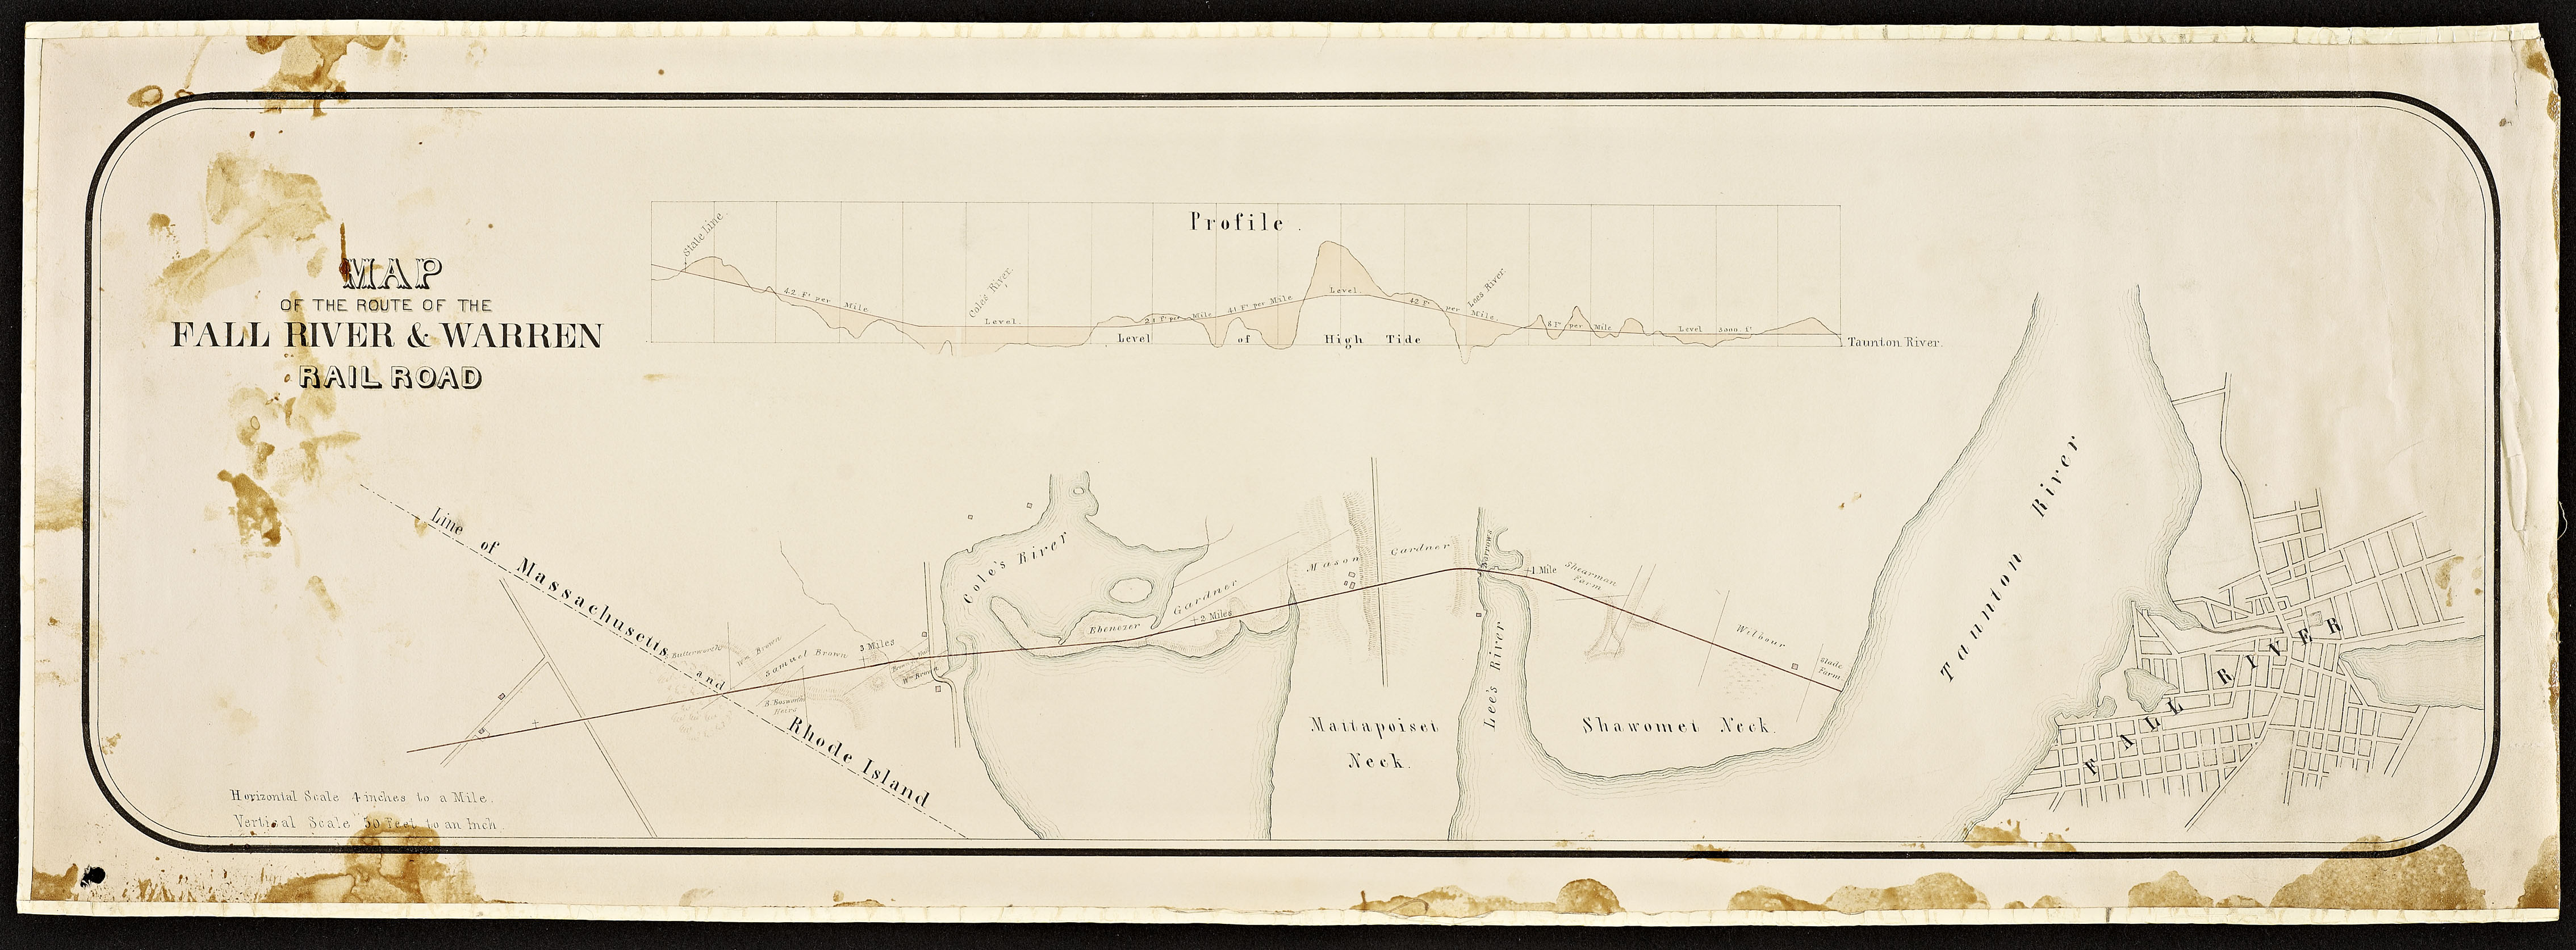 Map of the route of the Fall River & Warren Railroad.